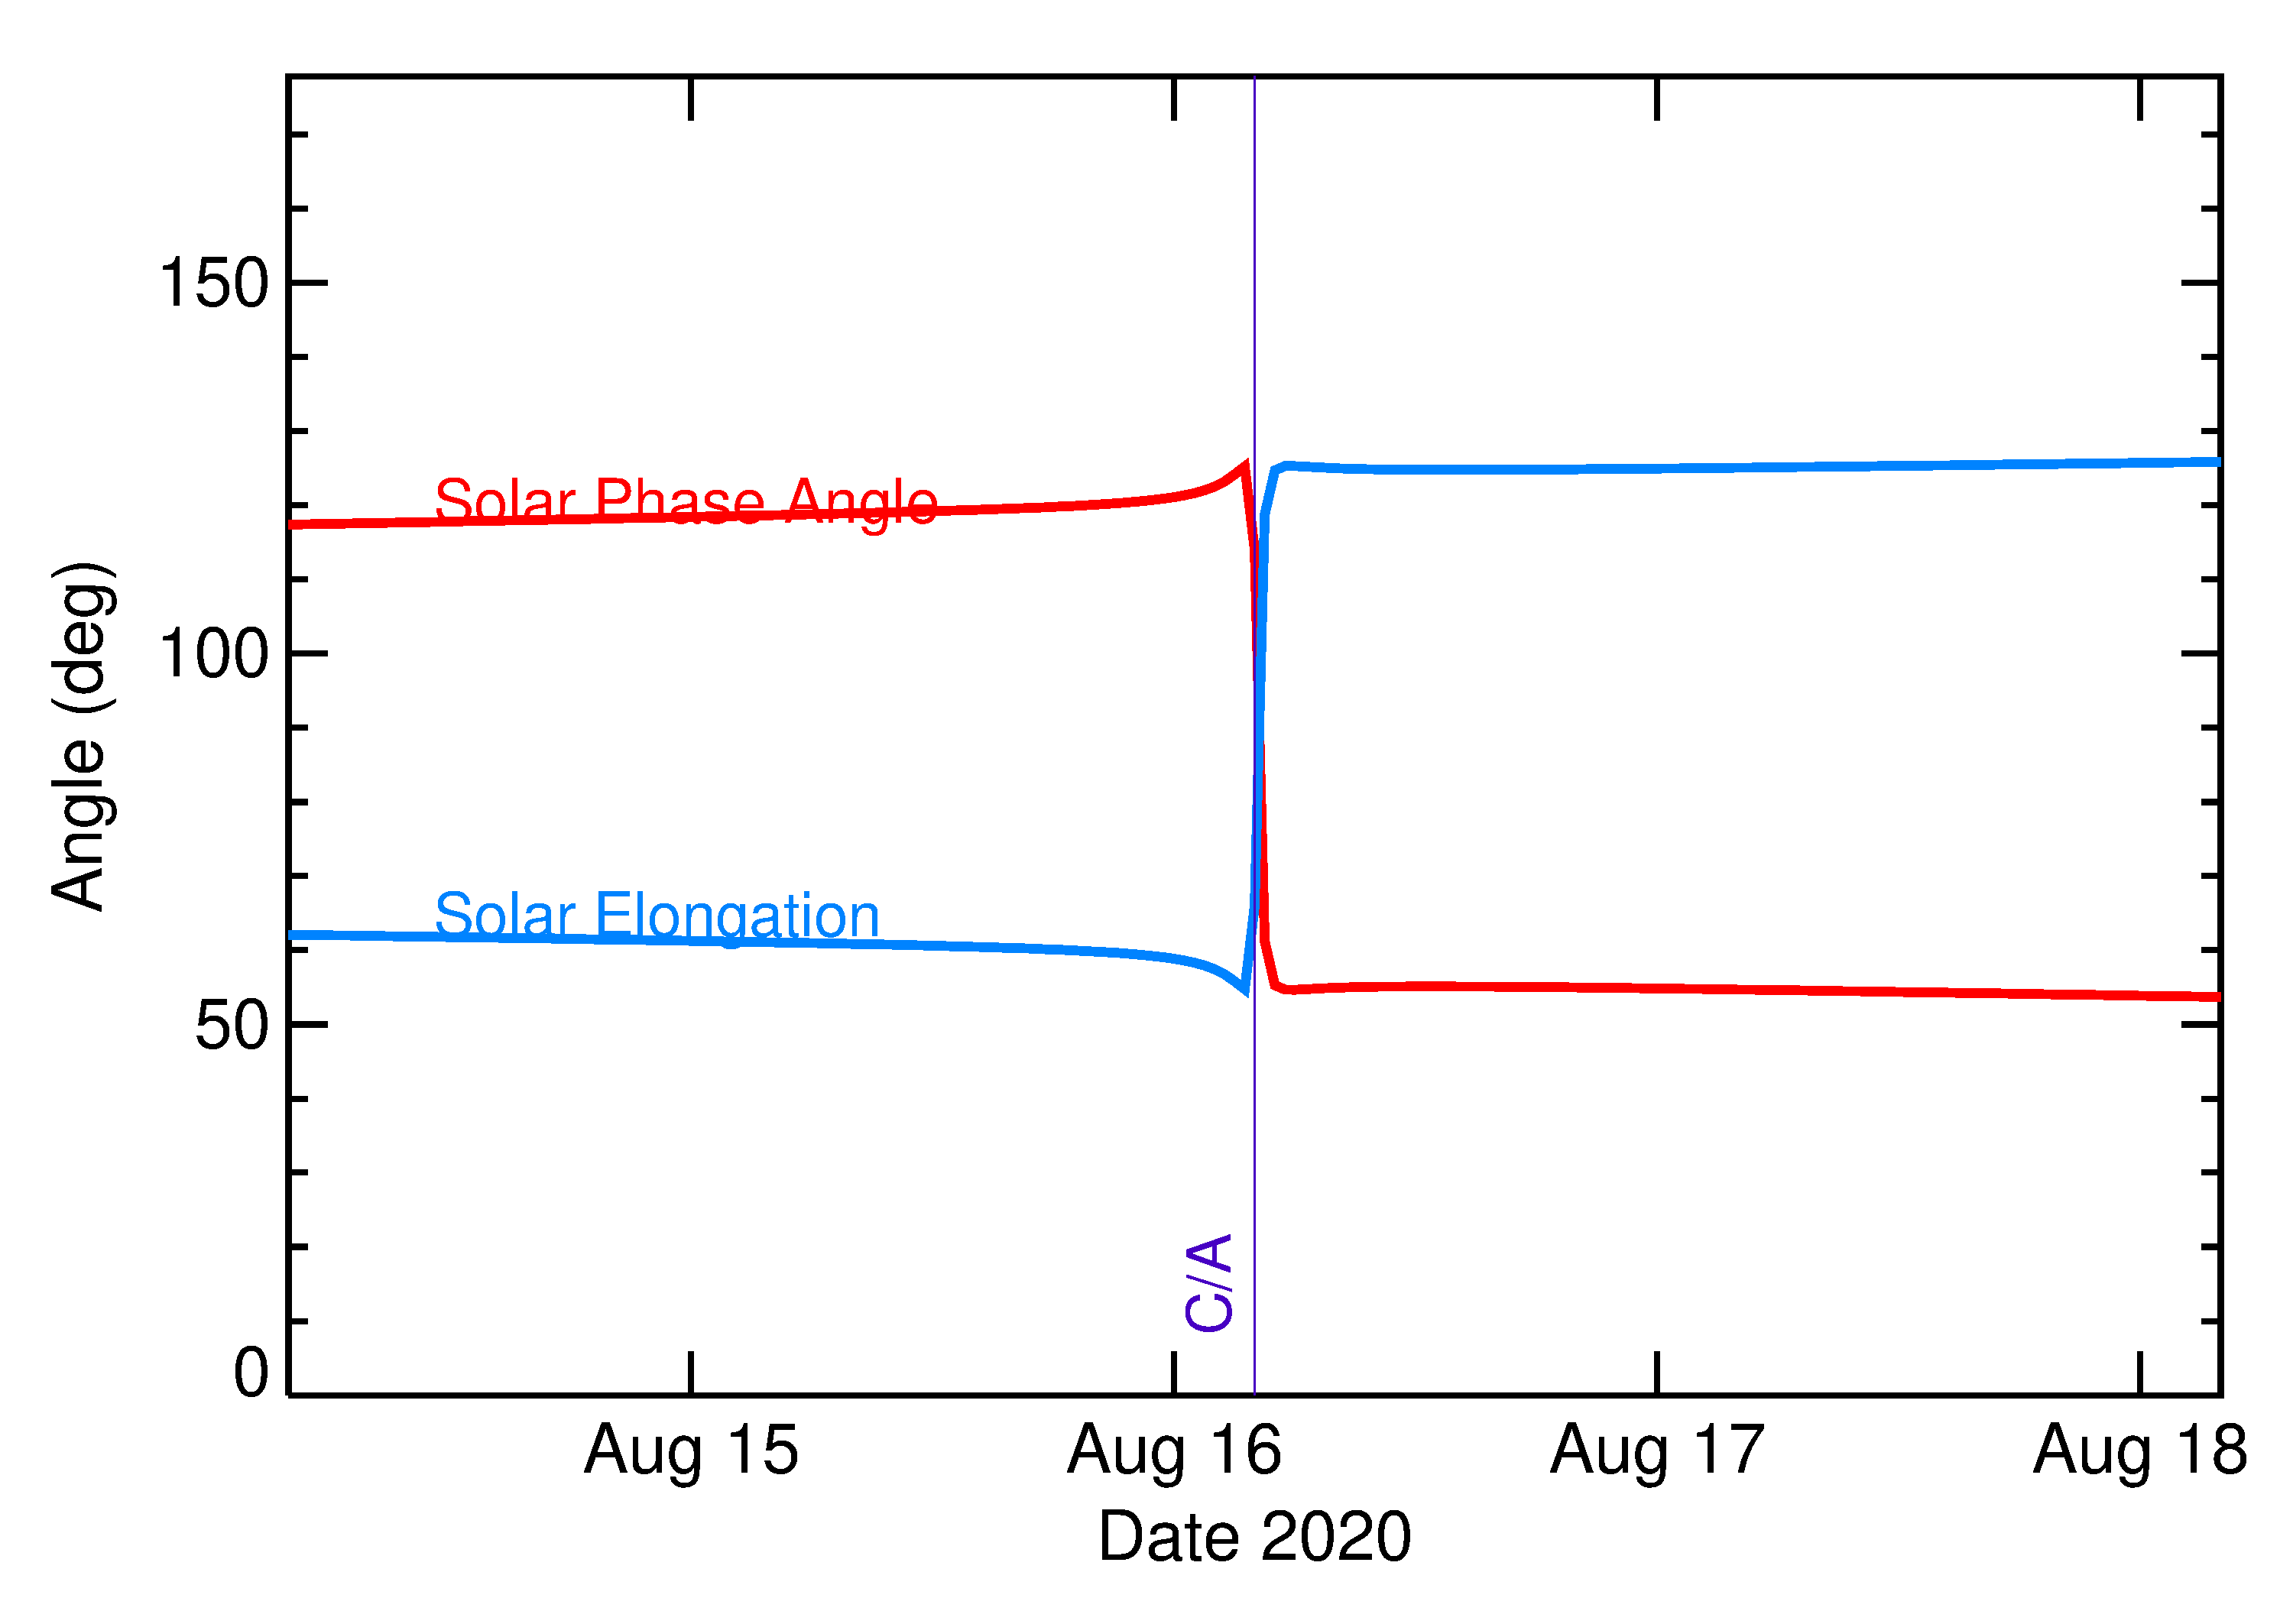 Solar Elongation and Solar Phase Angle of 2020 QG in the days around closest approach